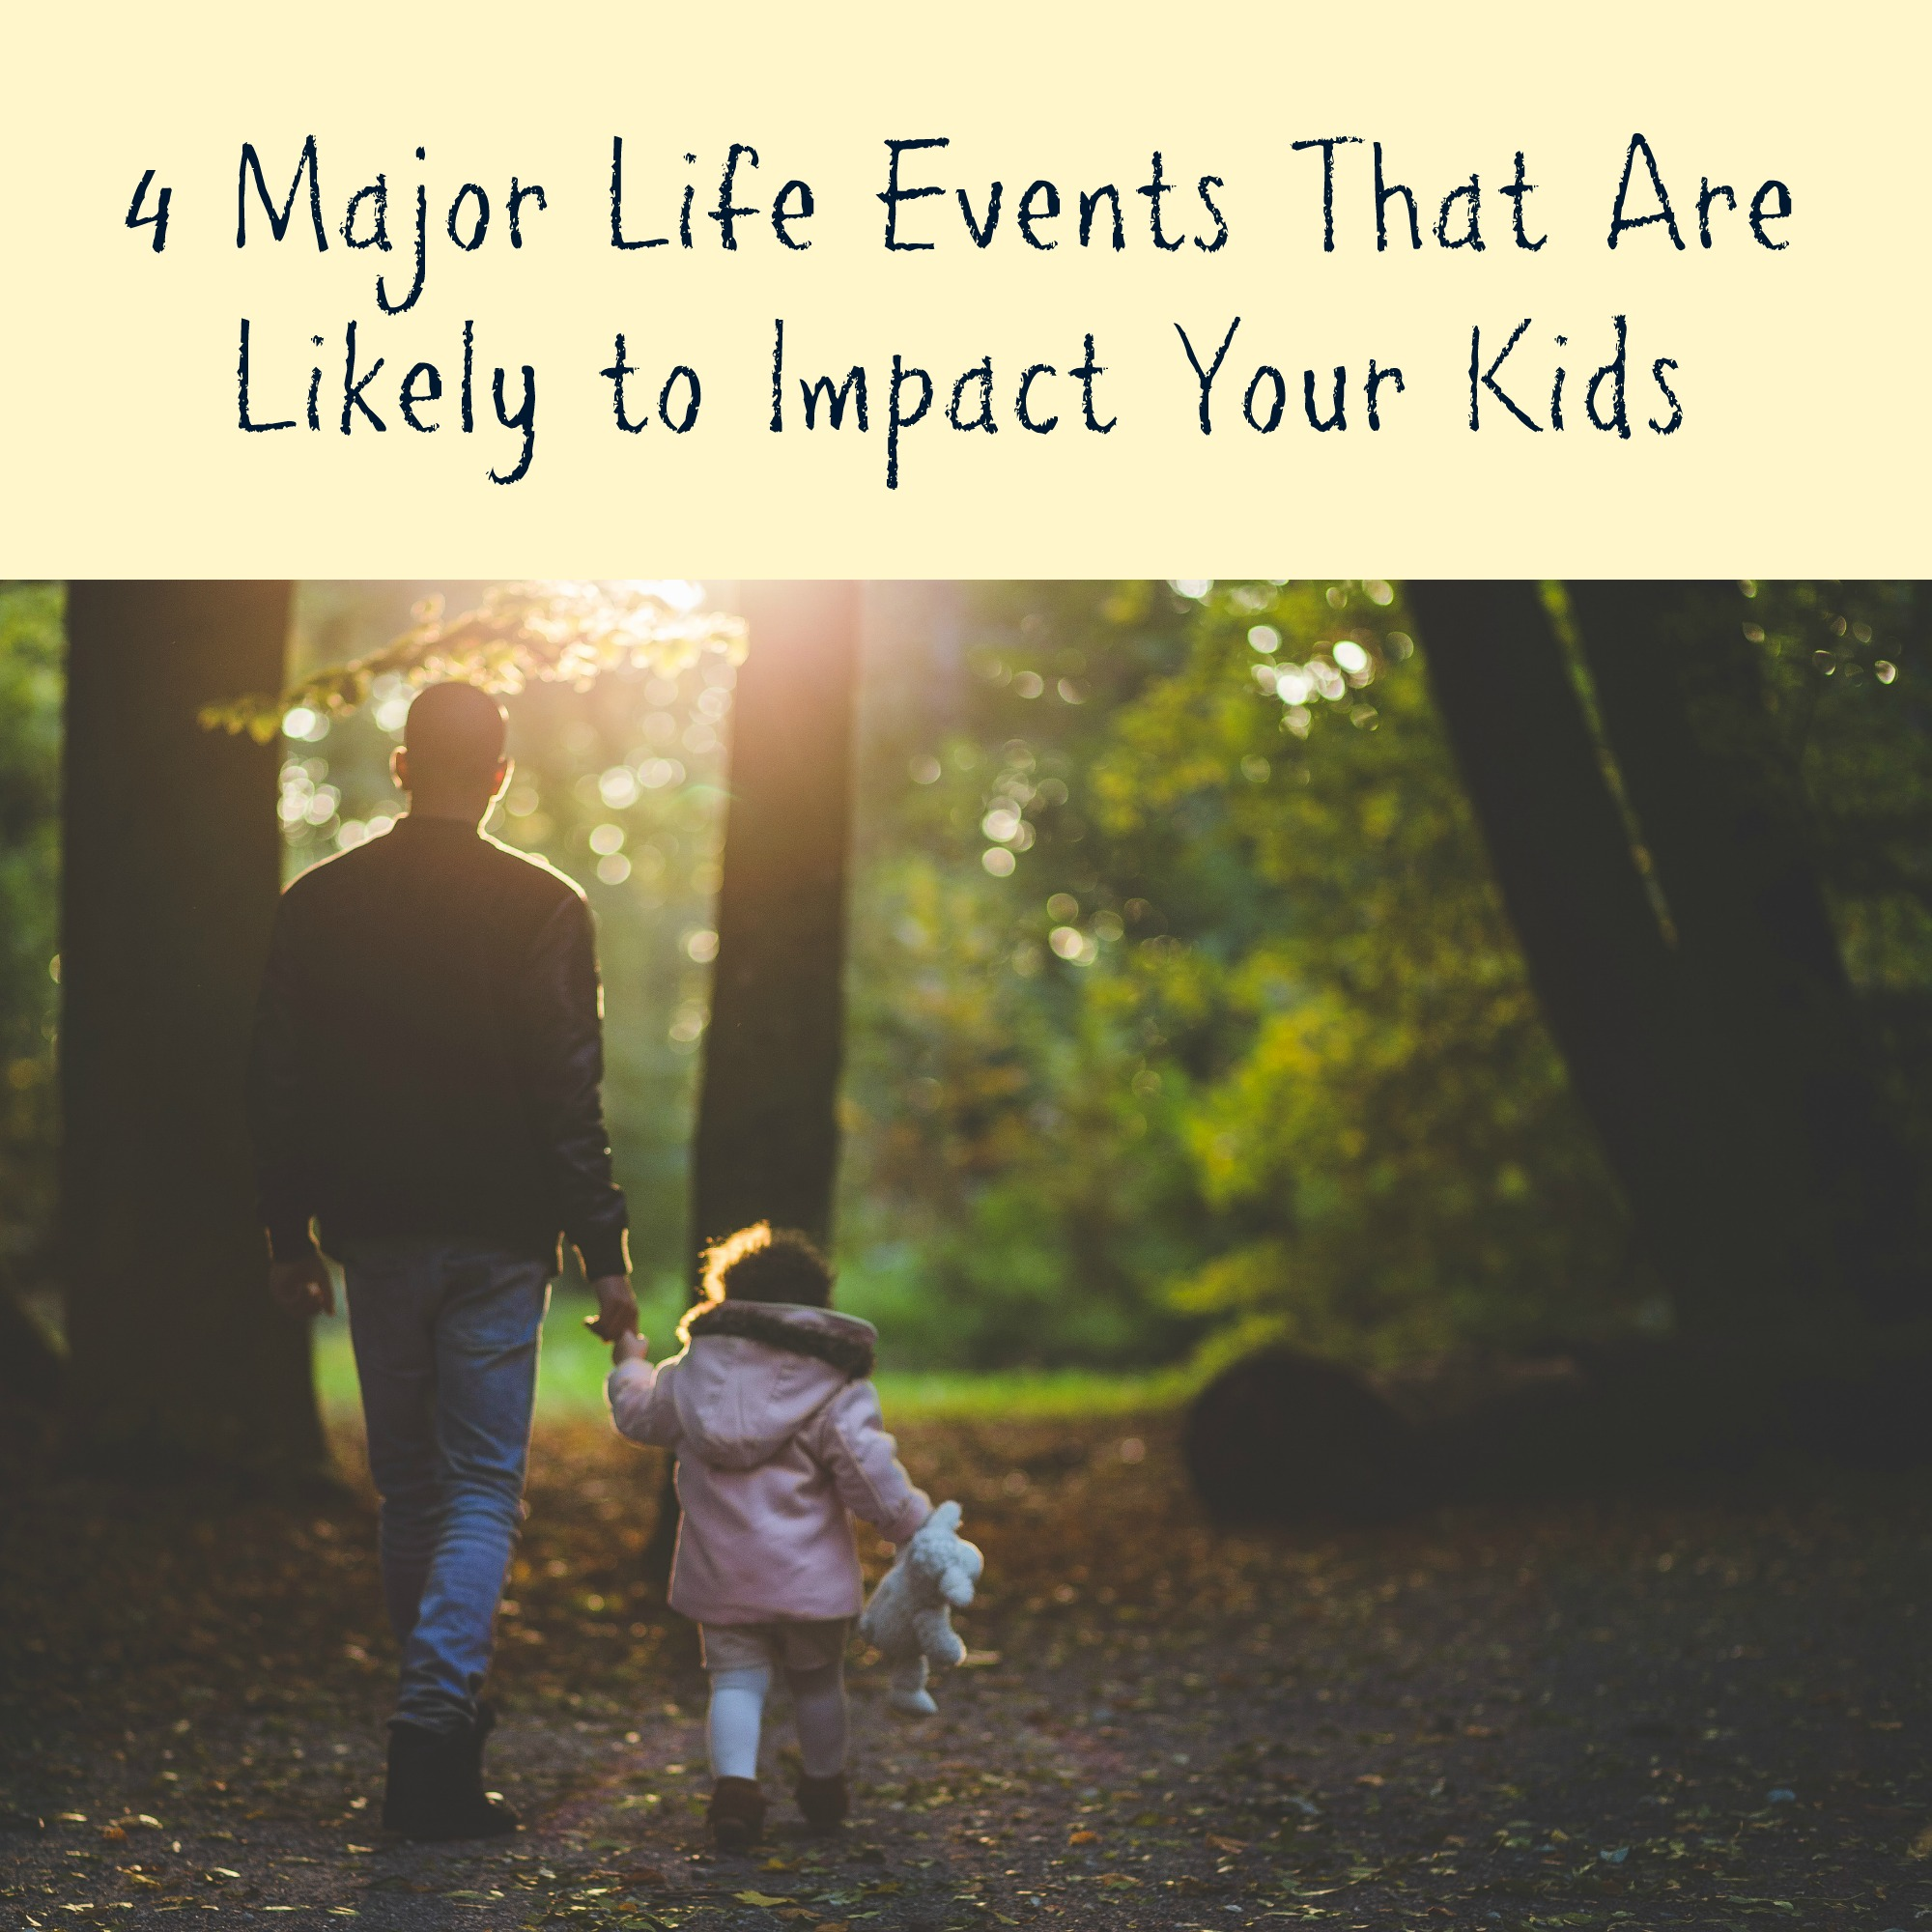 4 Major Life Events That Are Likely to Impact Your Kids